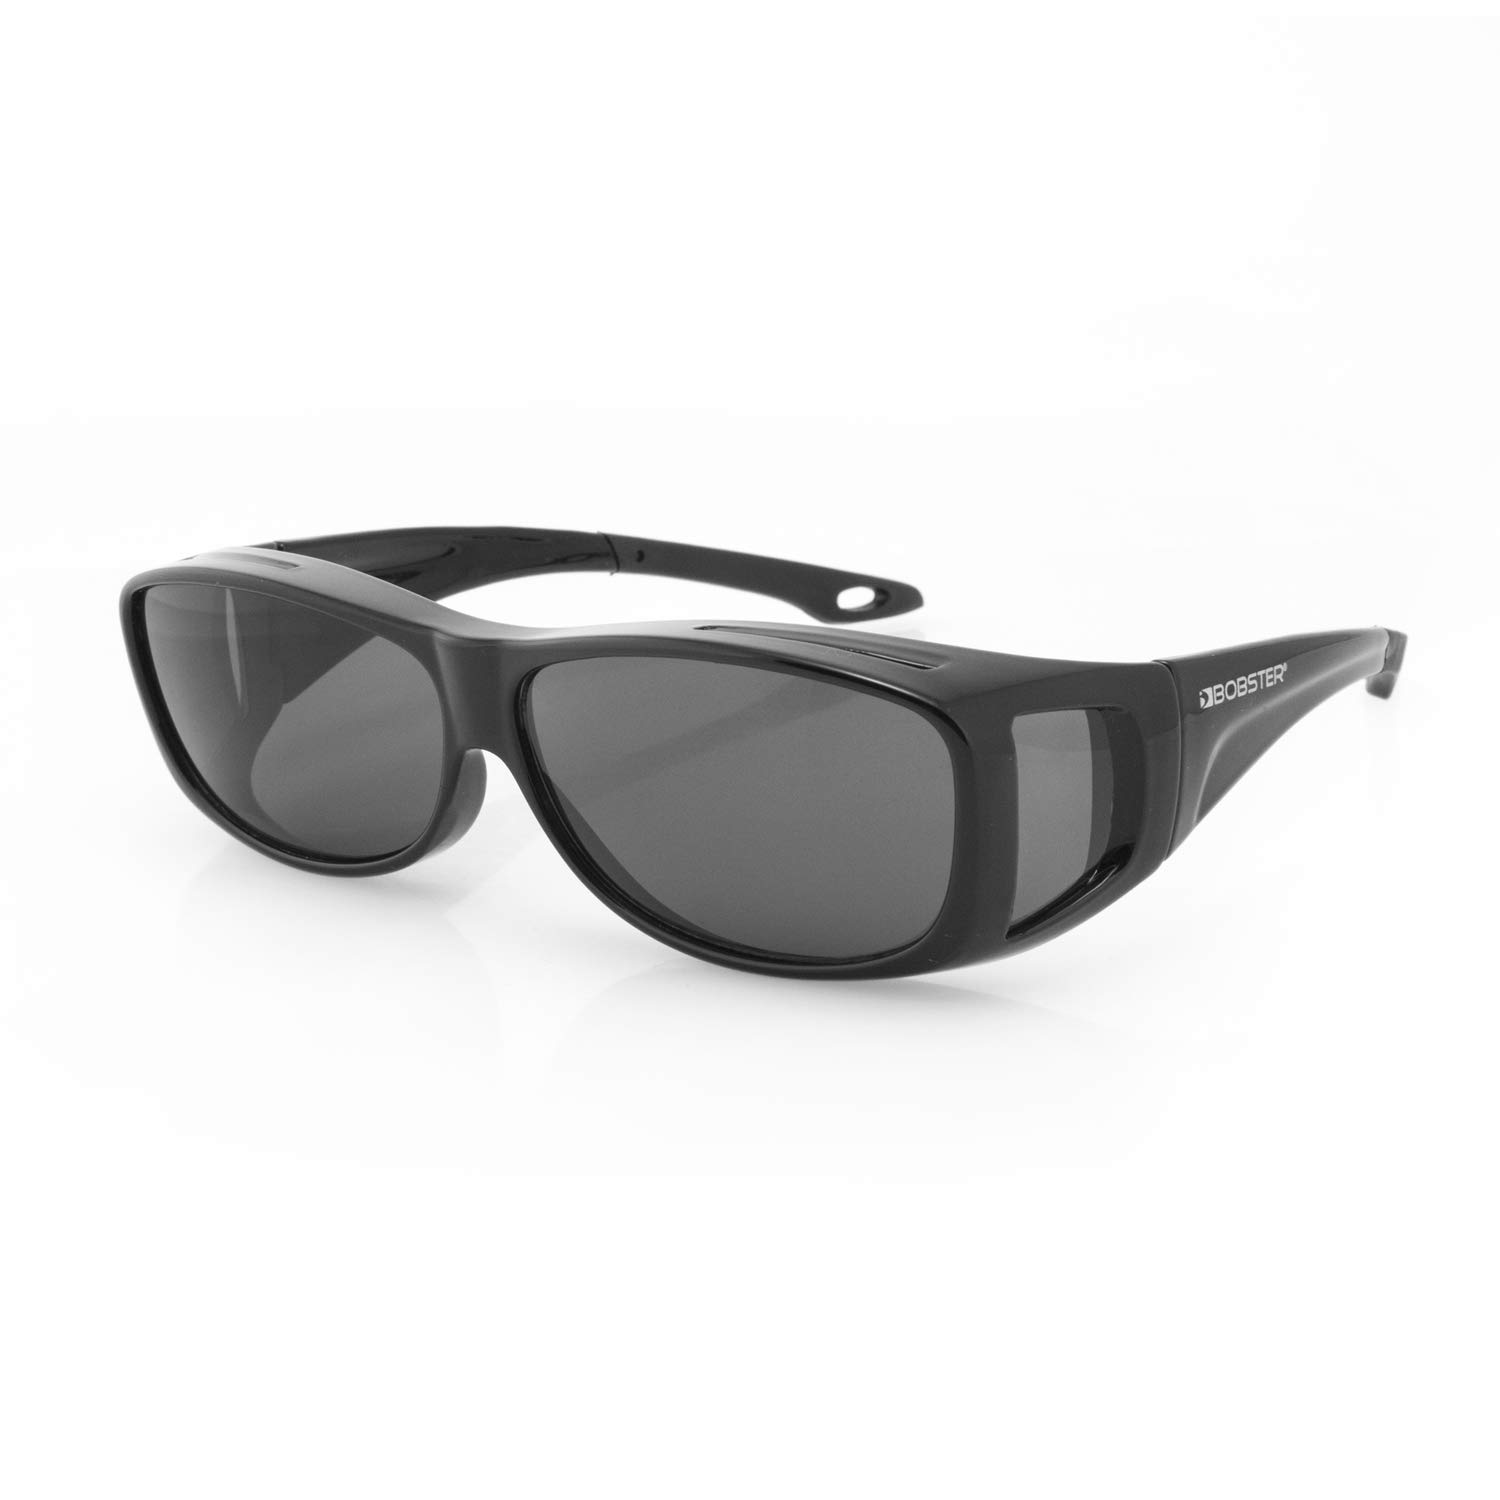 Bobster Condor 2 OTG Sunglasses, Gloss Black Frame, Anti-Fog Smoked Lens, Small by Bobster